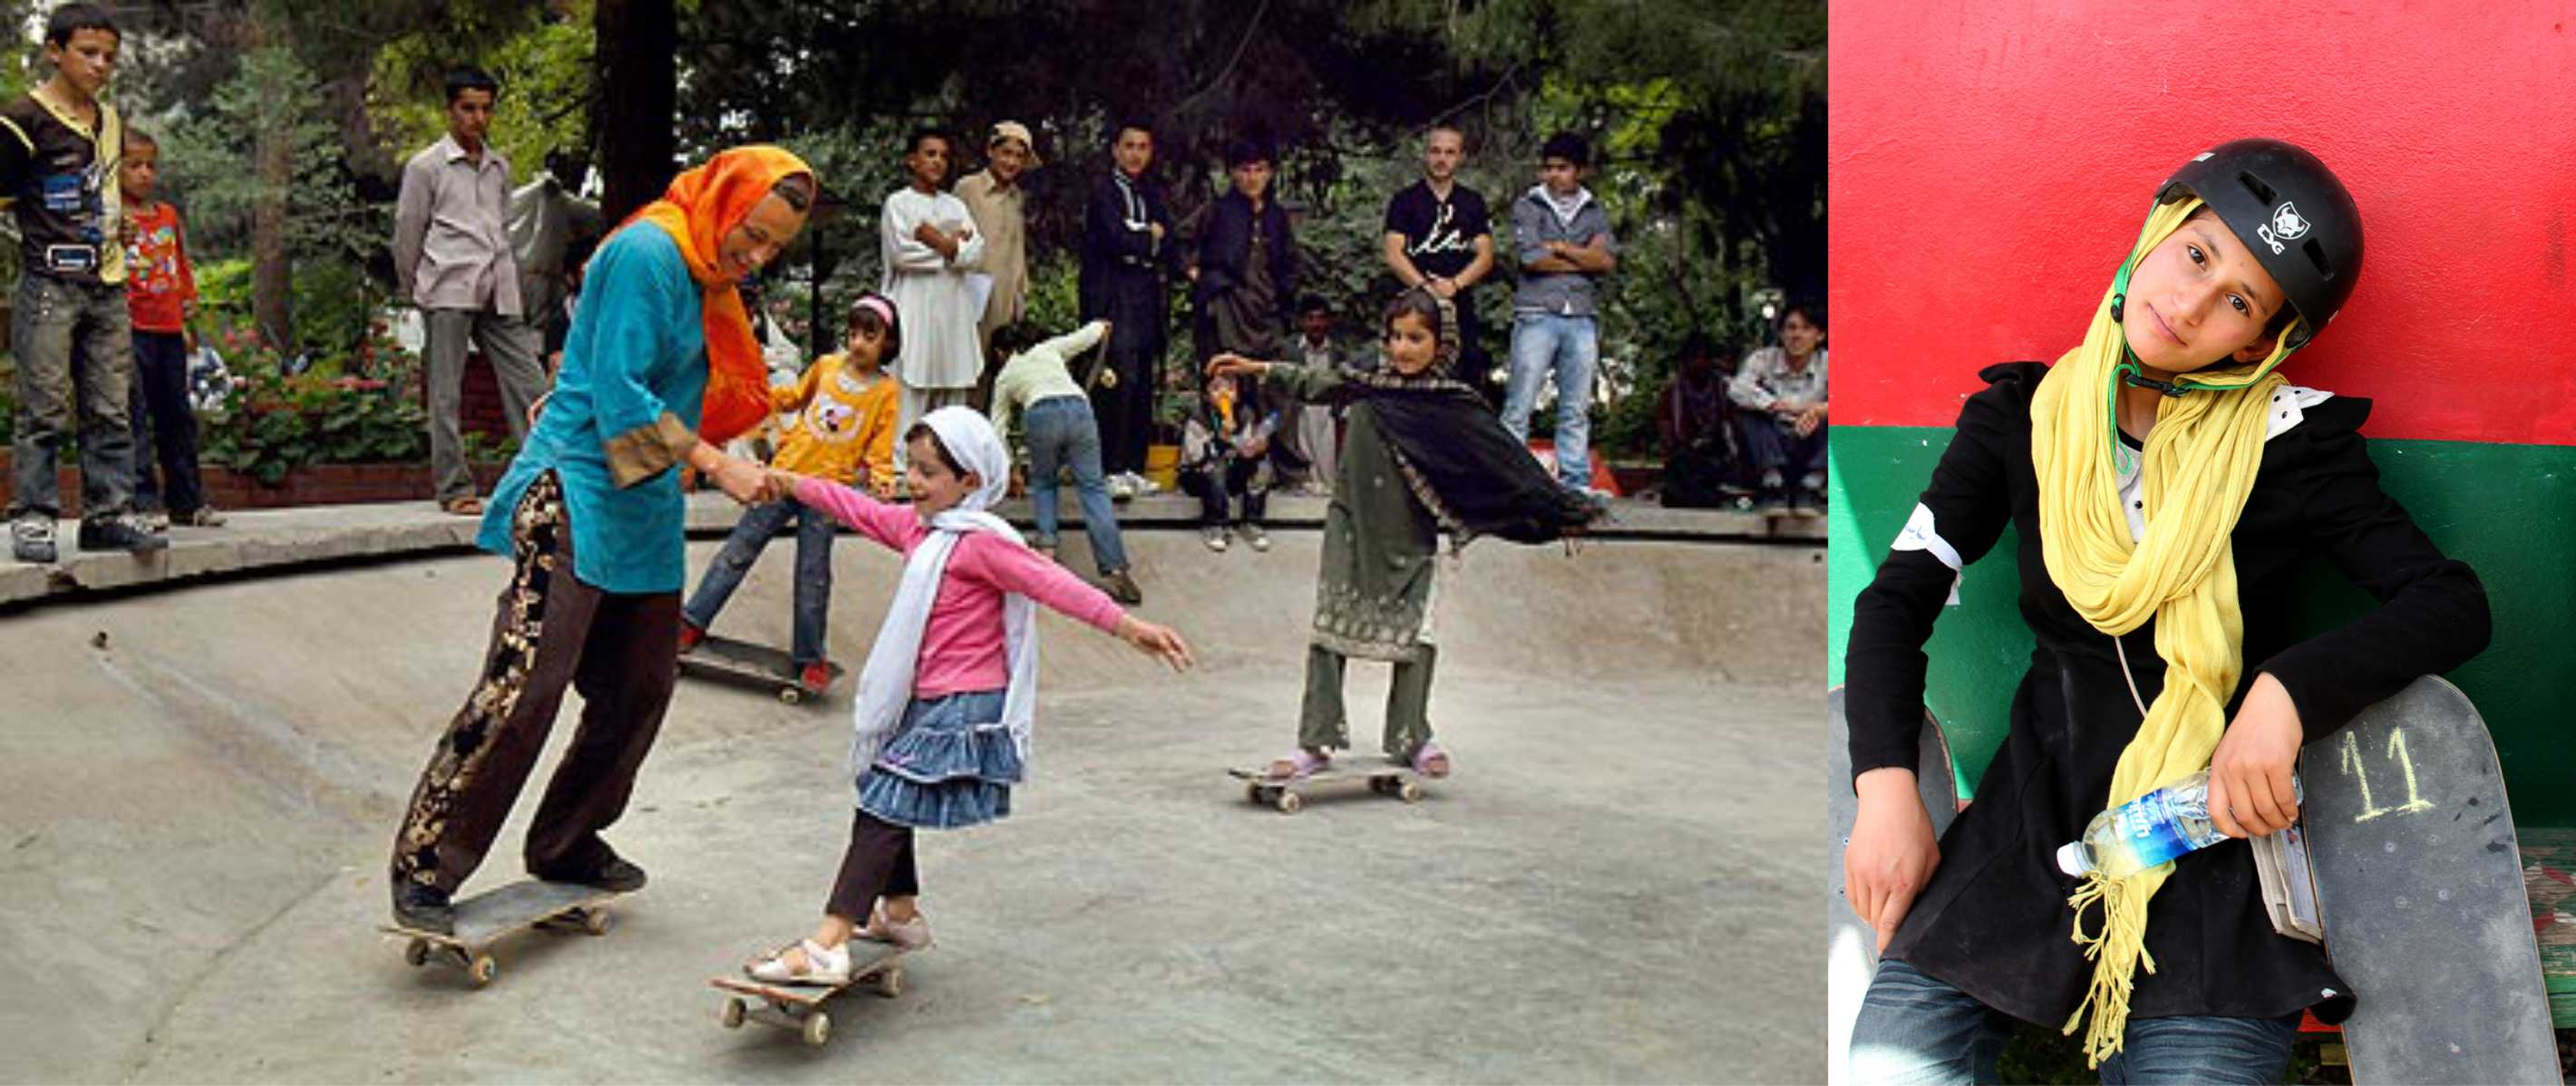 Skateistan - Afghan Girls Skateboarding - Skateboard Tutors